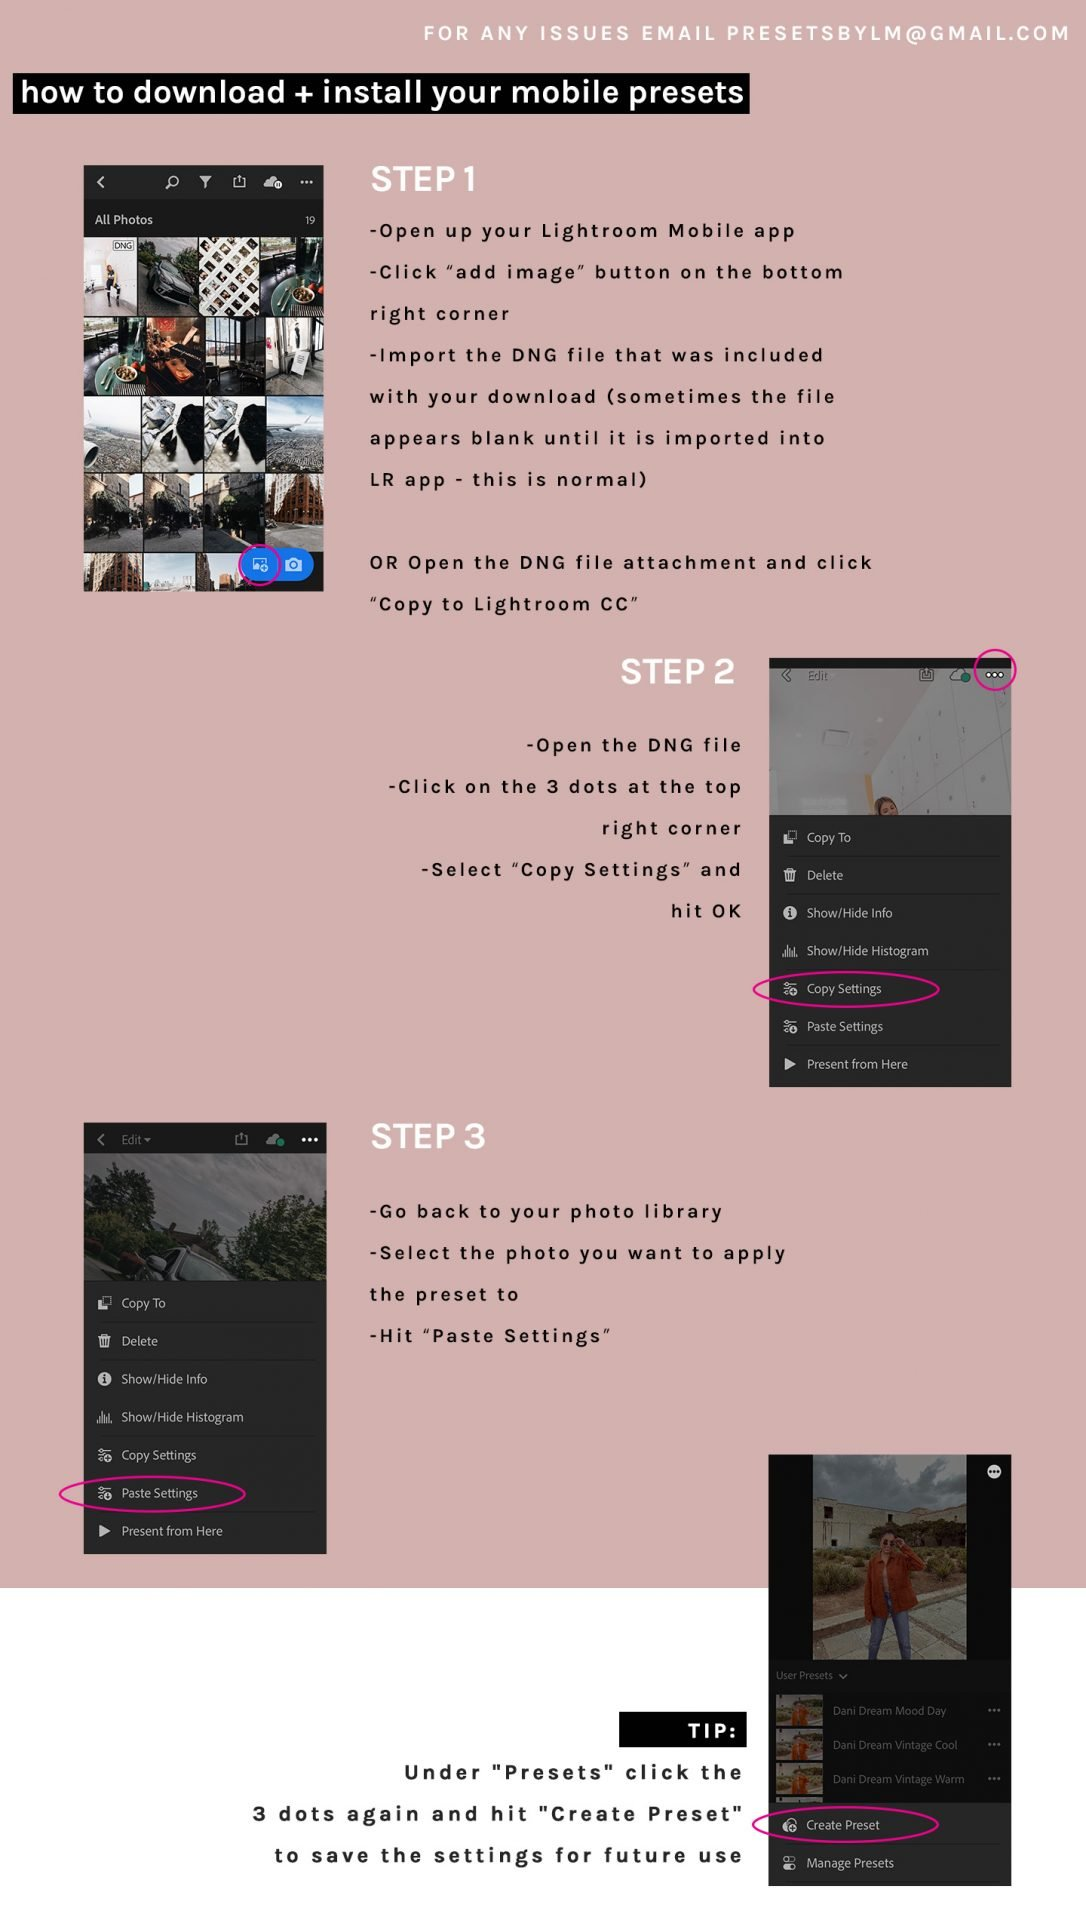 Download + Install Mobile Preset